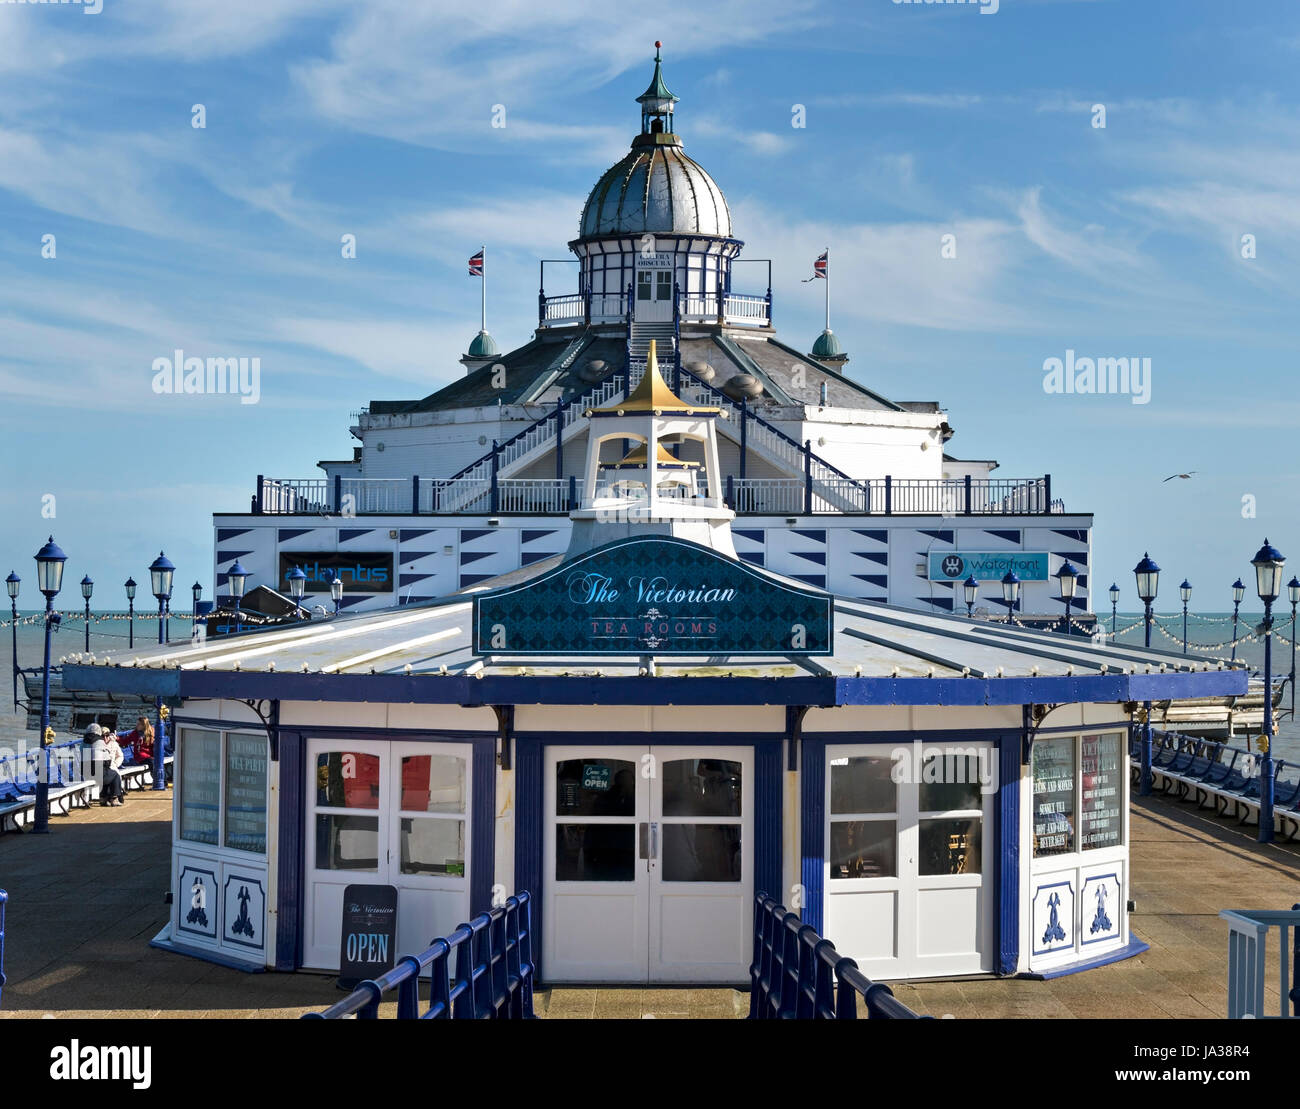 The Victorian Tearooms cafe restaurant with Camera Obscura beyond, Eastbourne Pier, East Sussex, England, UK Stock Photo